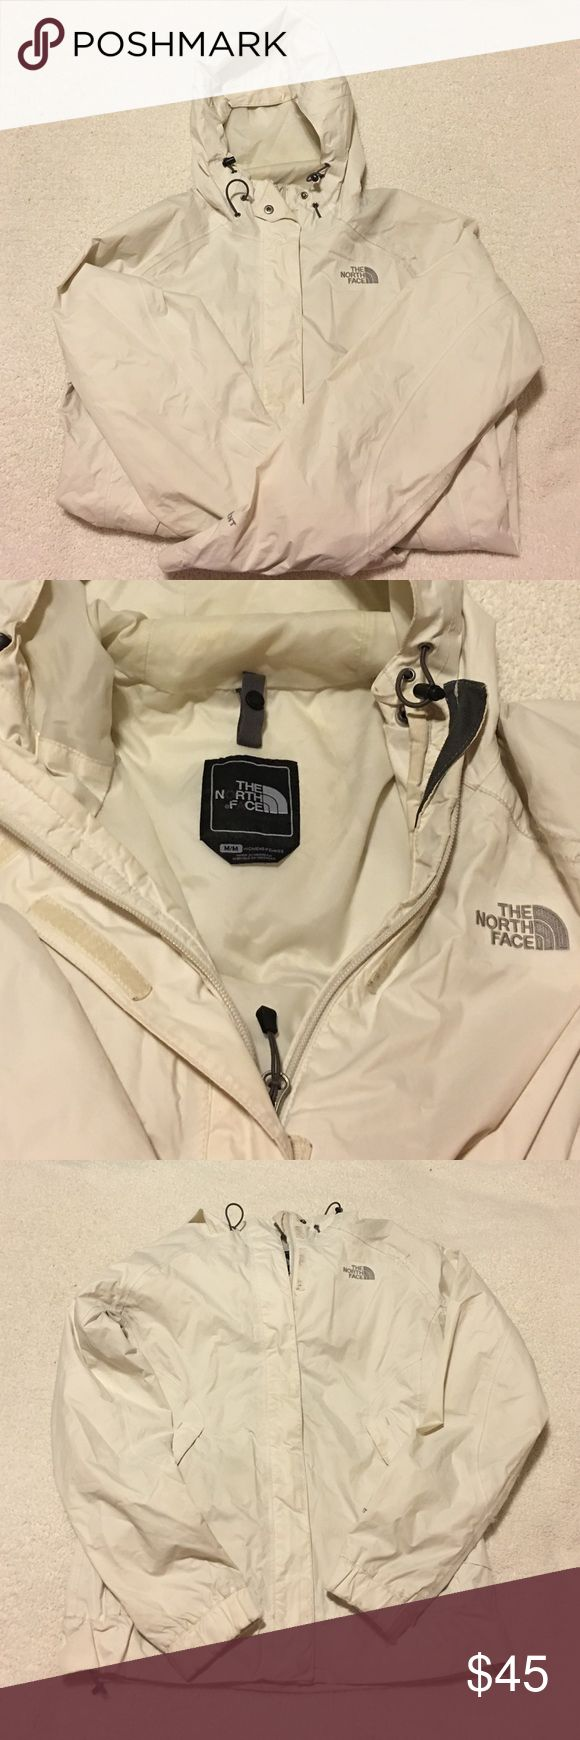 White North Face Raincoat This White North Face Raincoat has some signs of wearing, but still has a lot of life left. Sadly, I live in an area that has more than light to moderate rain. North Face Jackets & Coats